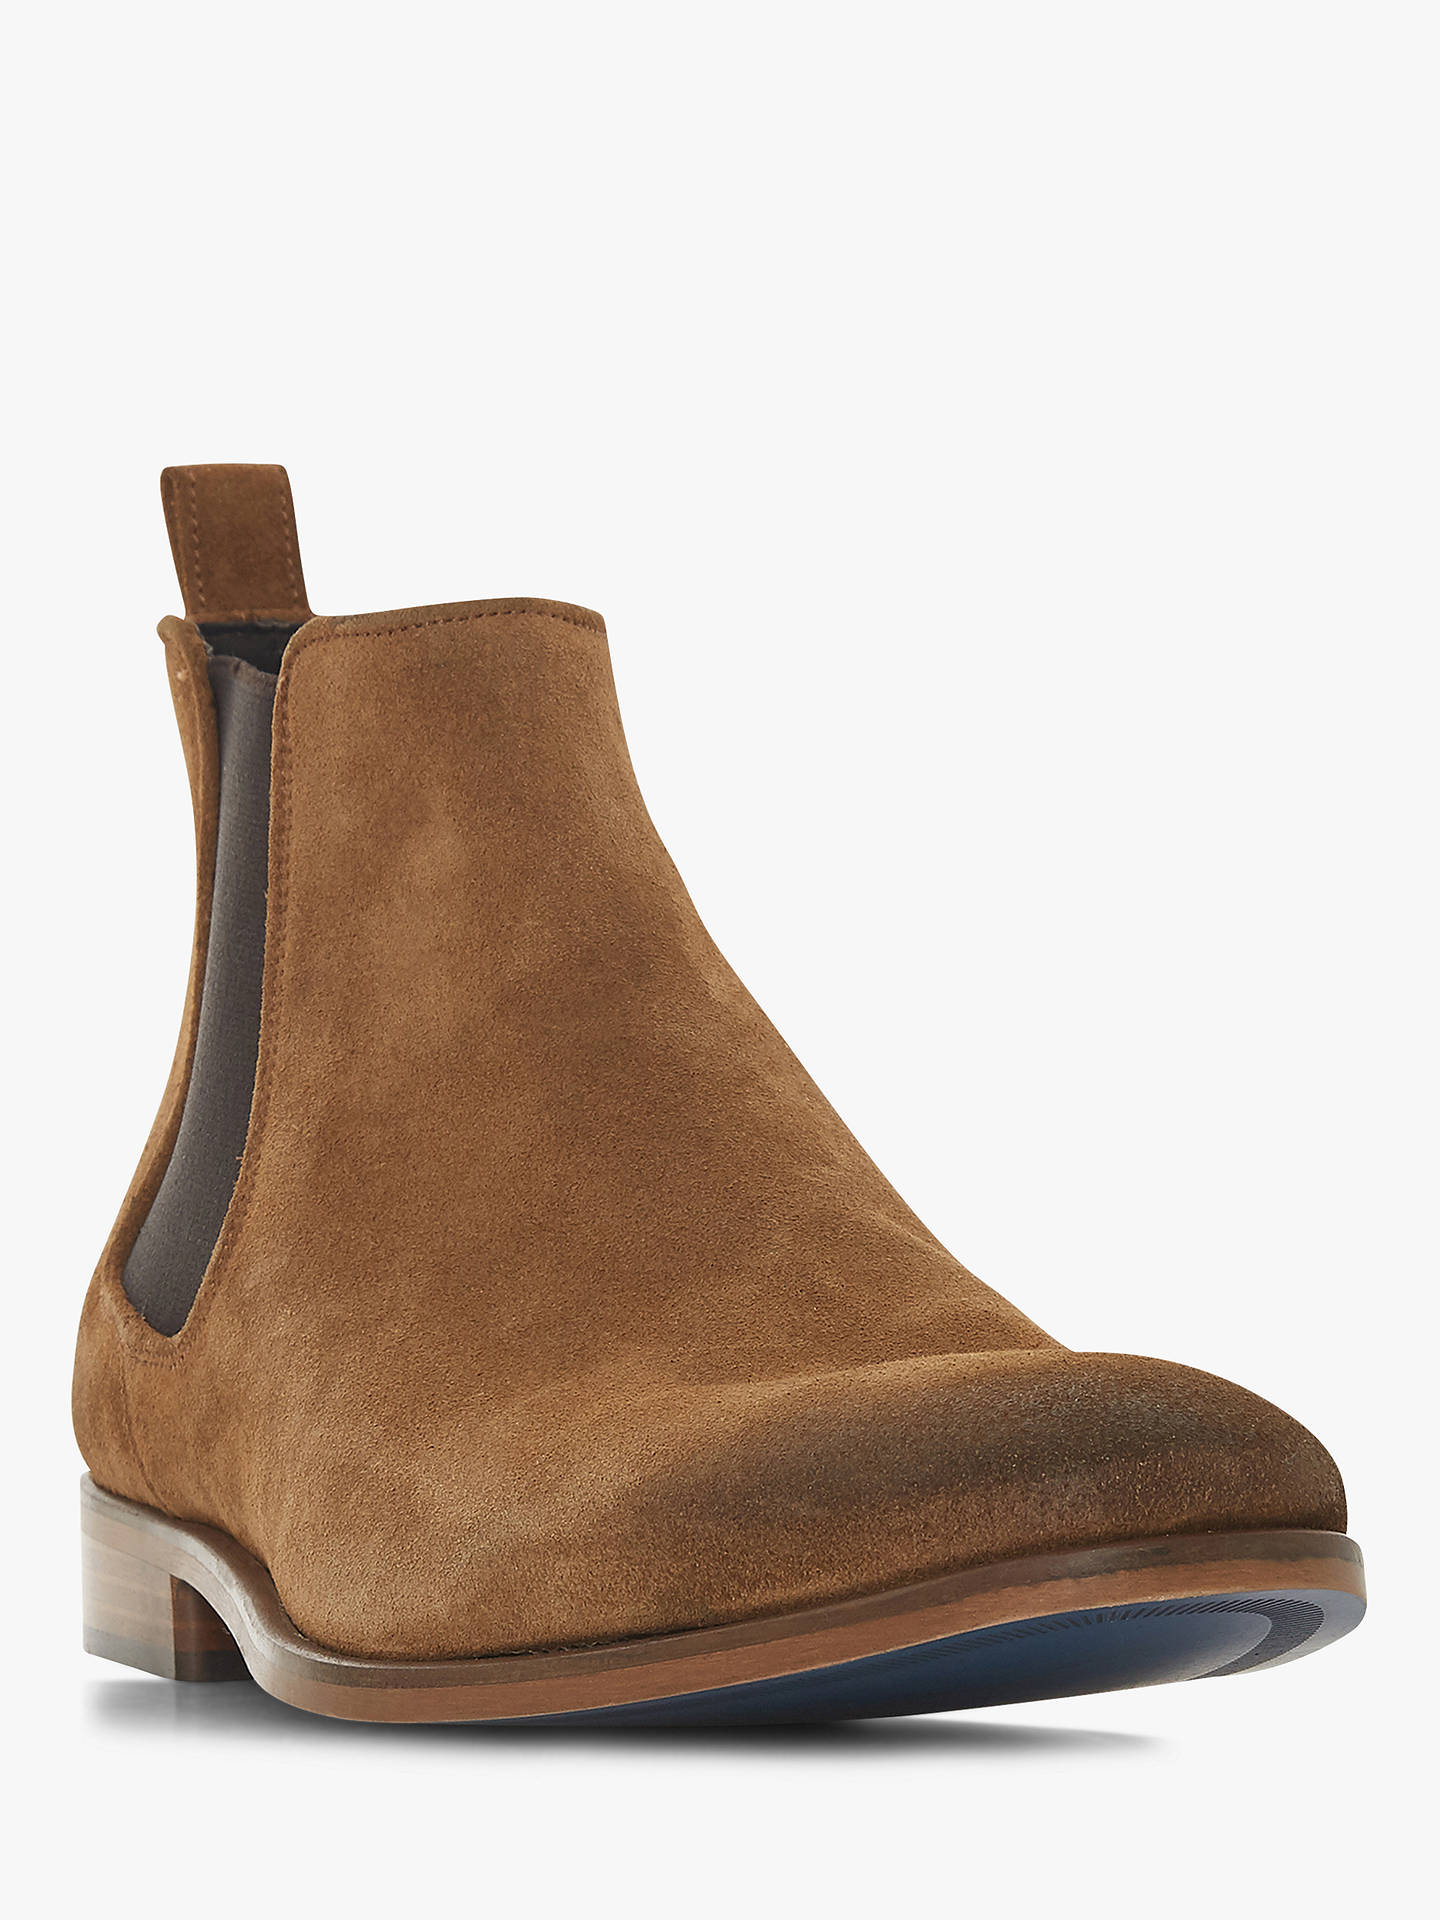 Buy Bertie Molecule Suede Chelsea Boots, Tan, 9 Online at johnlewis.com